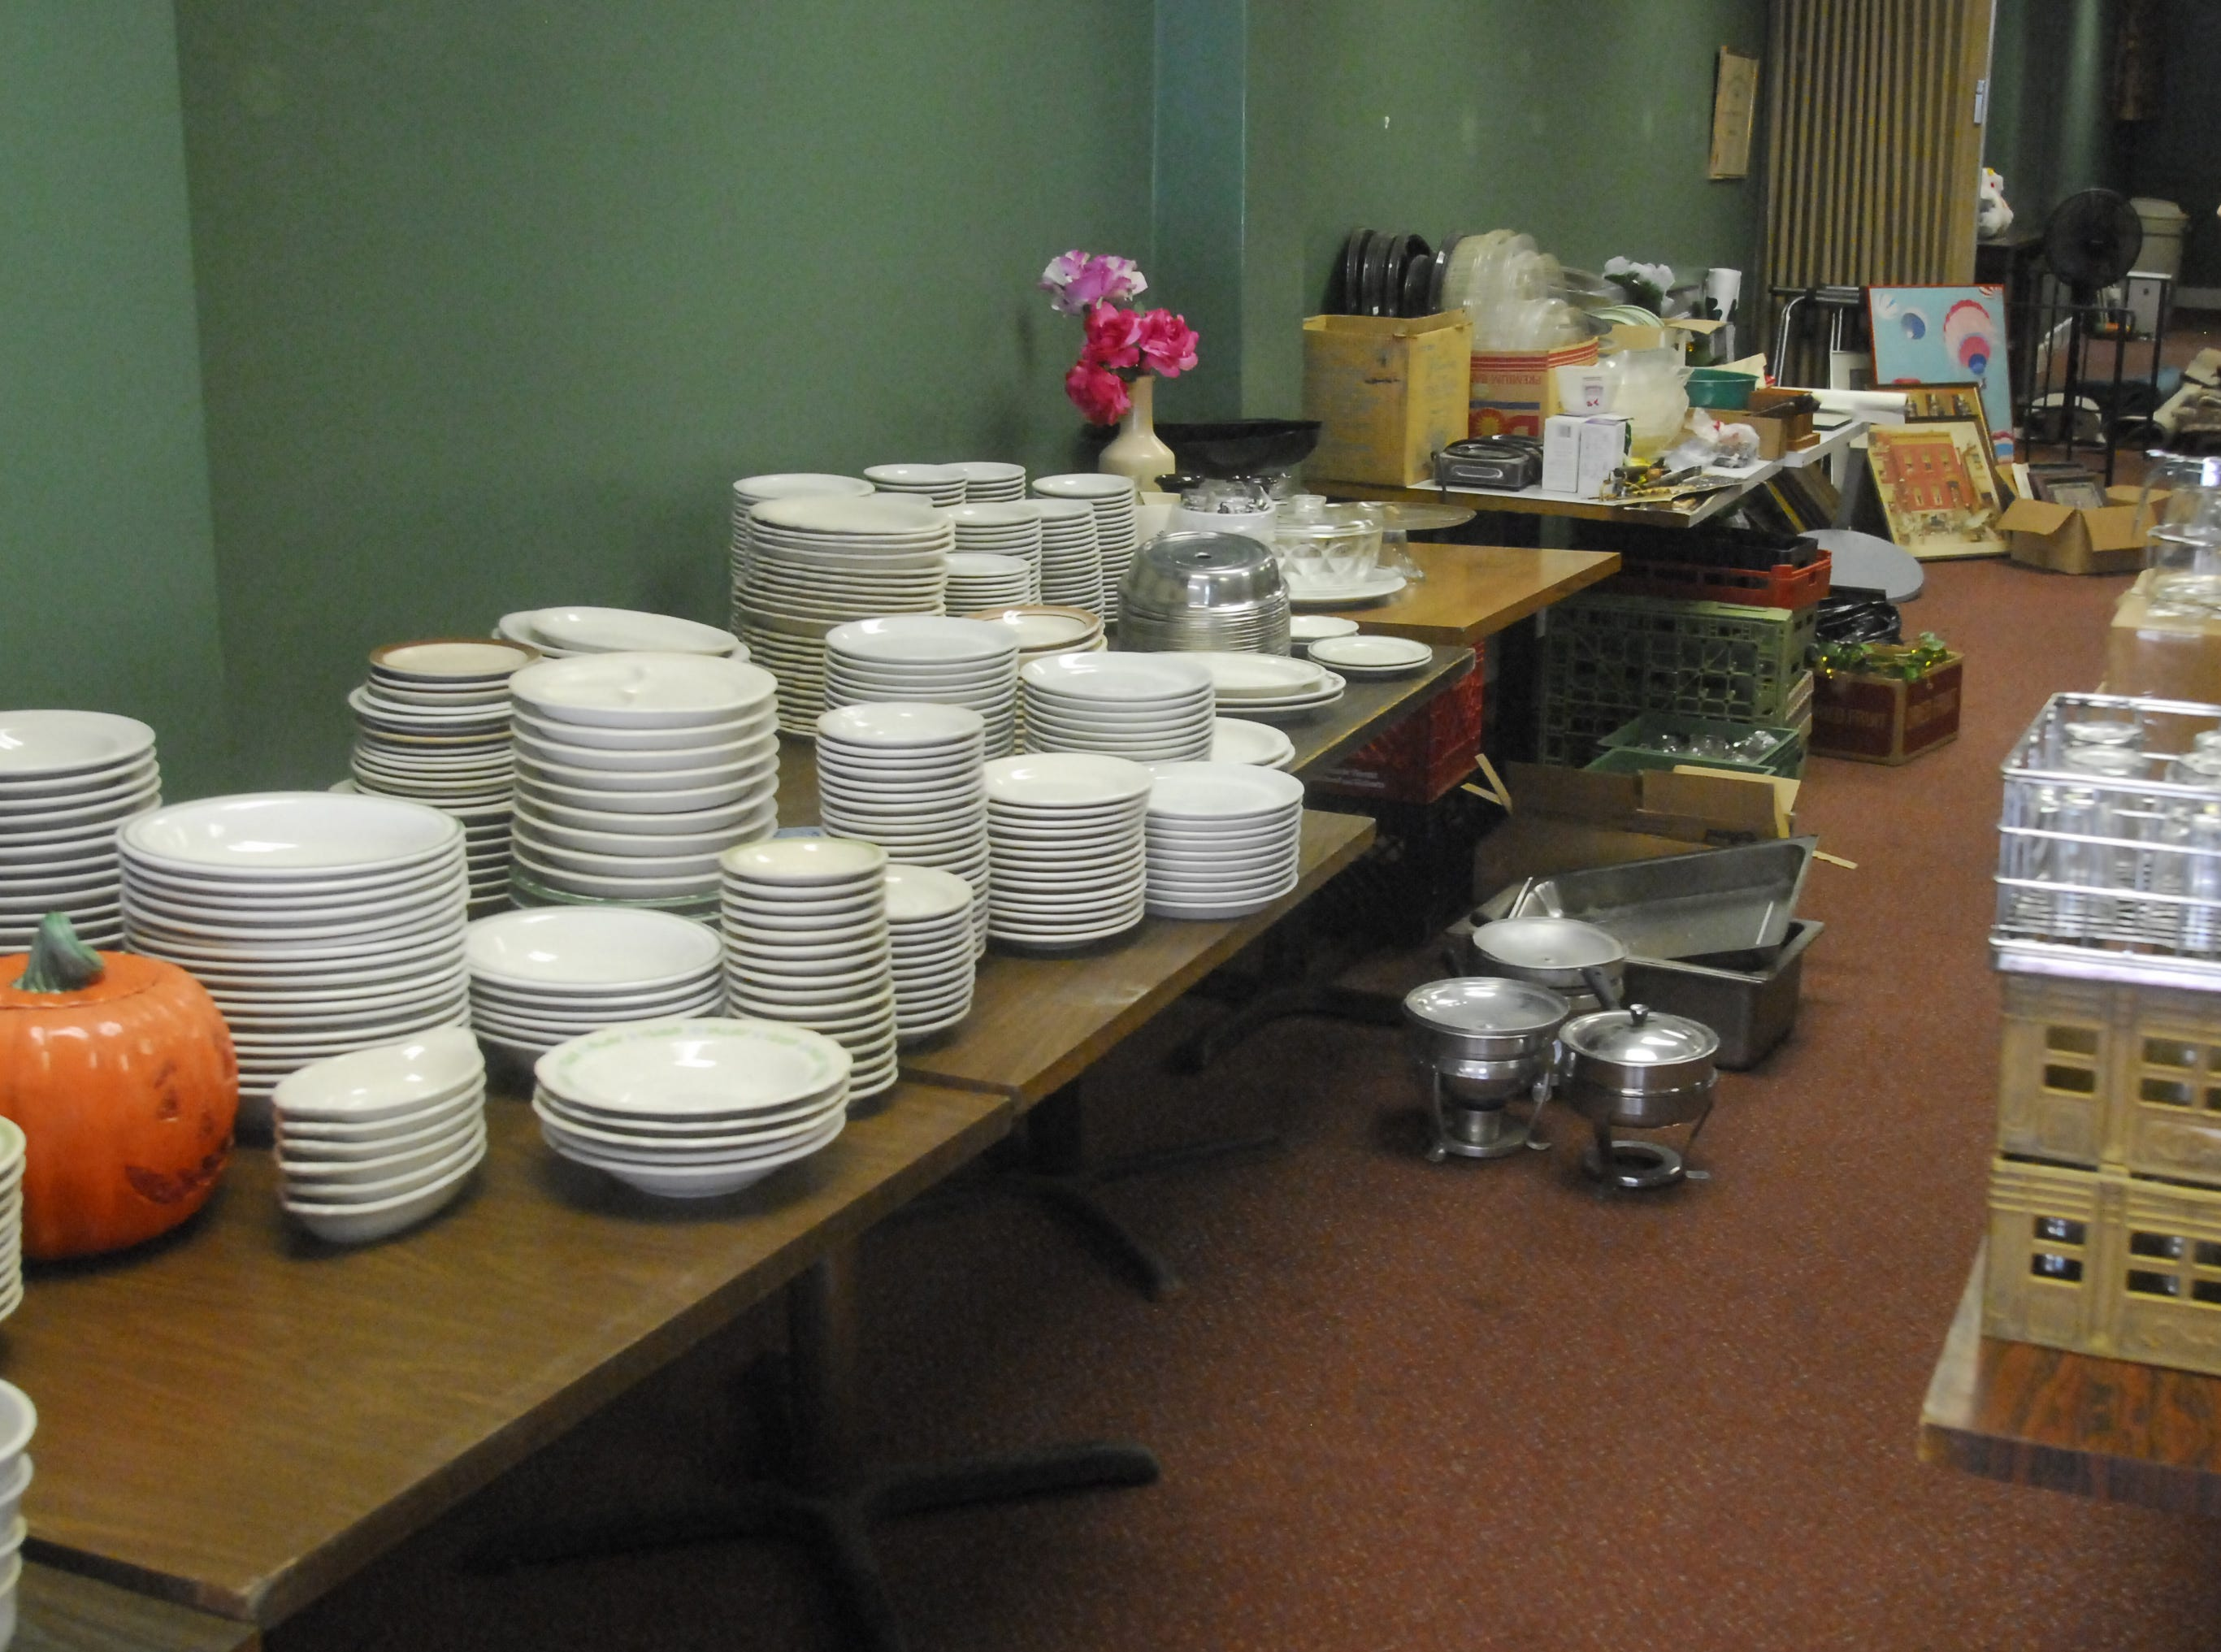 The garage sale at Shrank's Cafeteria features items i.e. plates, glassware, cookbooks and  artwork in 2010.